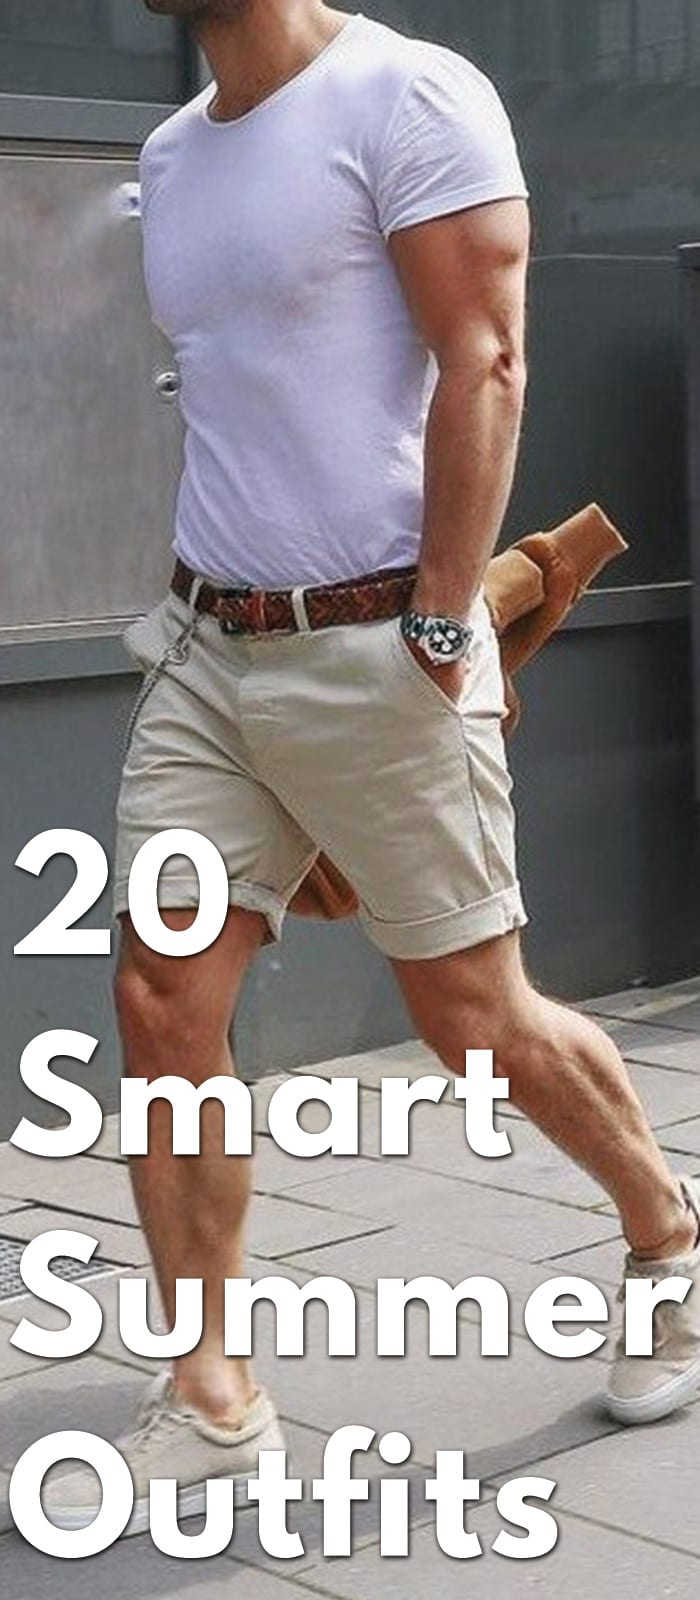 20-Smart-Summer-Outfits